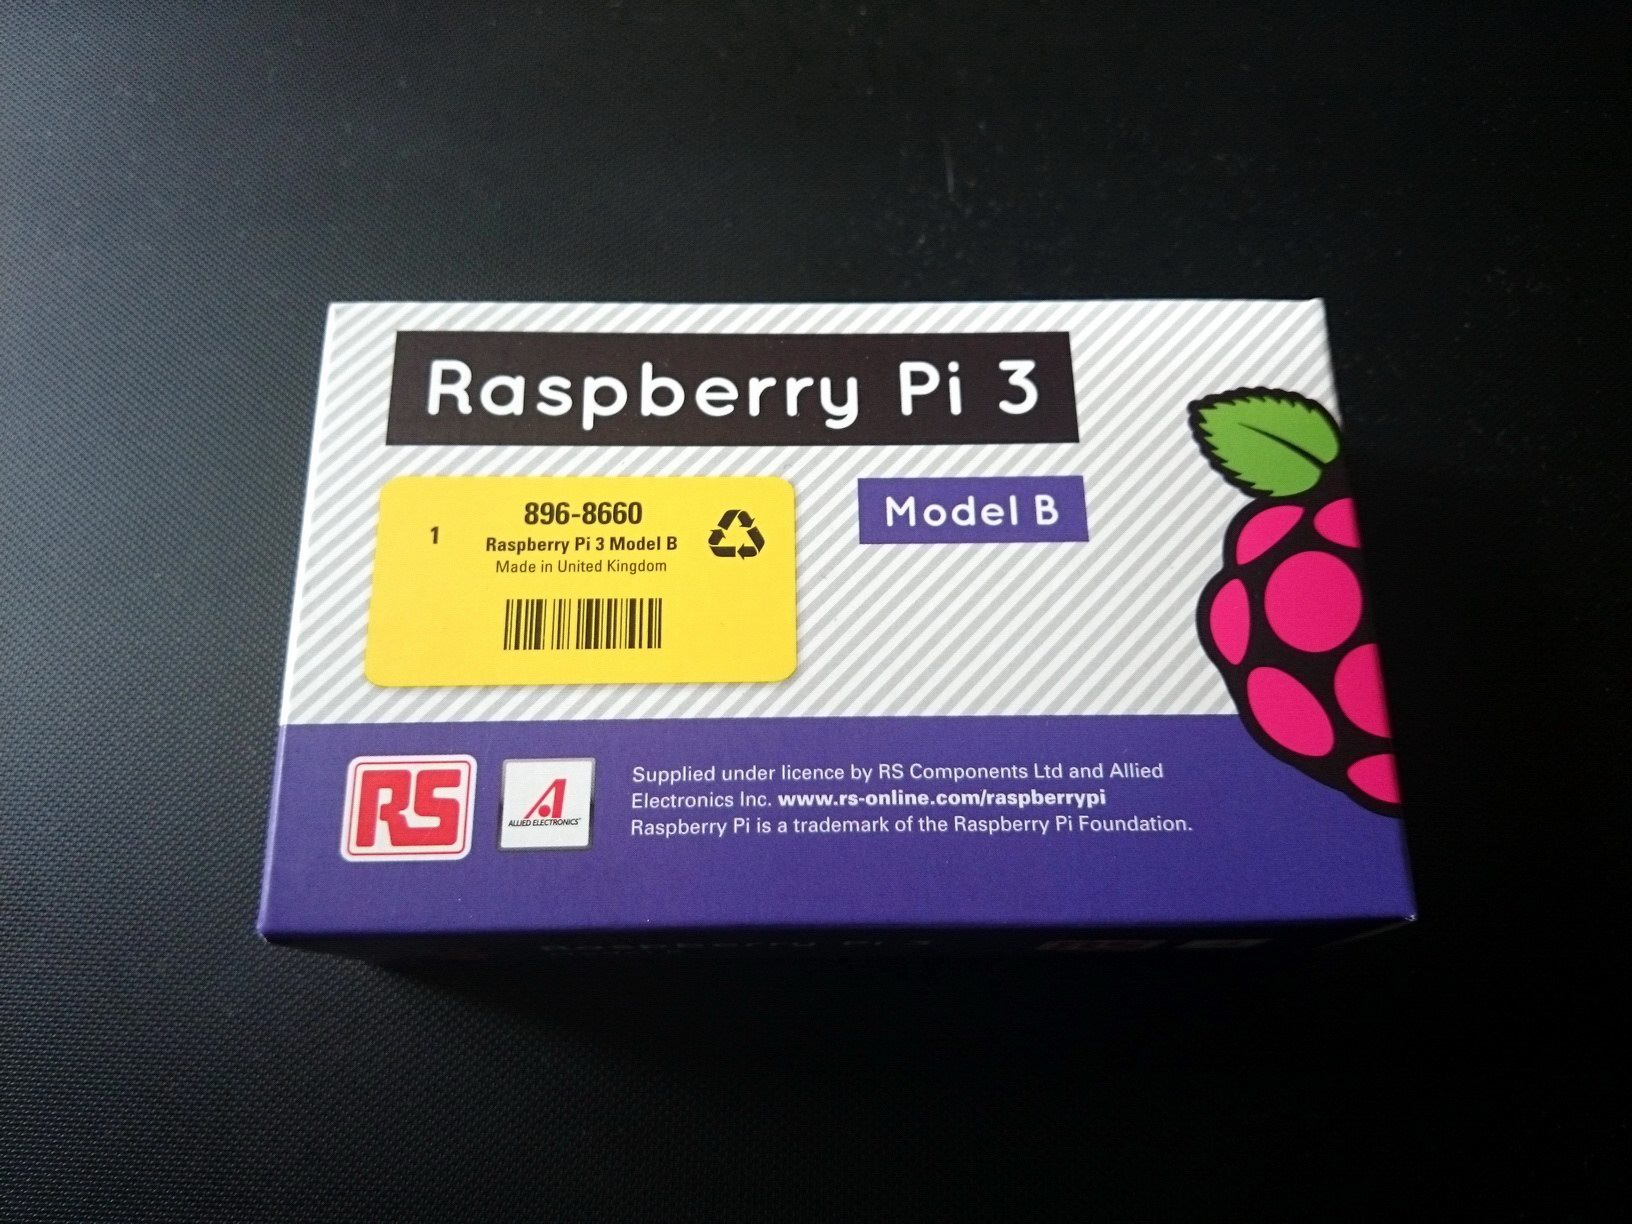 Raspberry PI 3 shininess